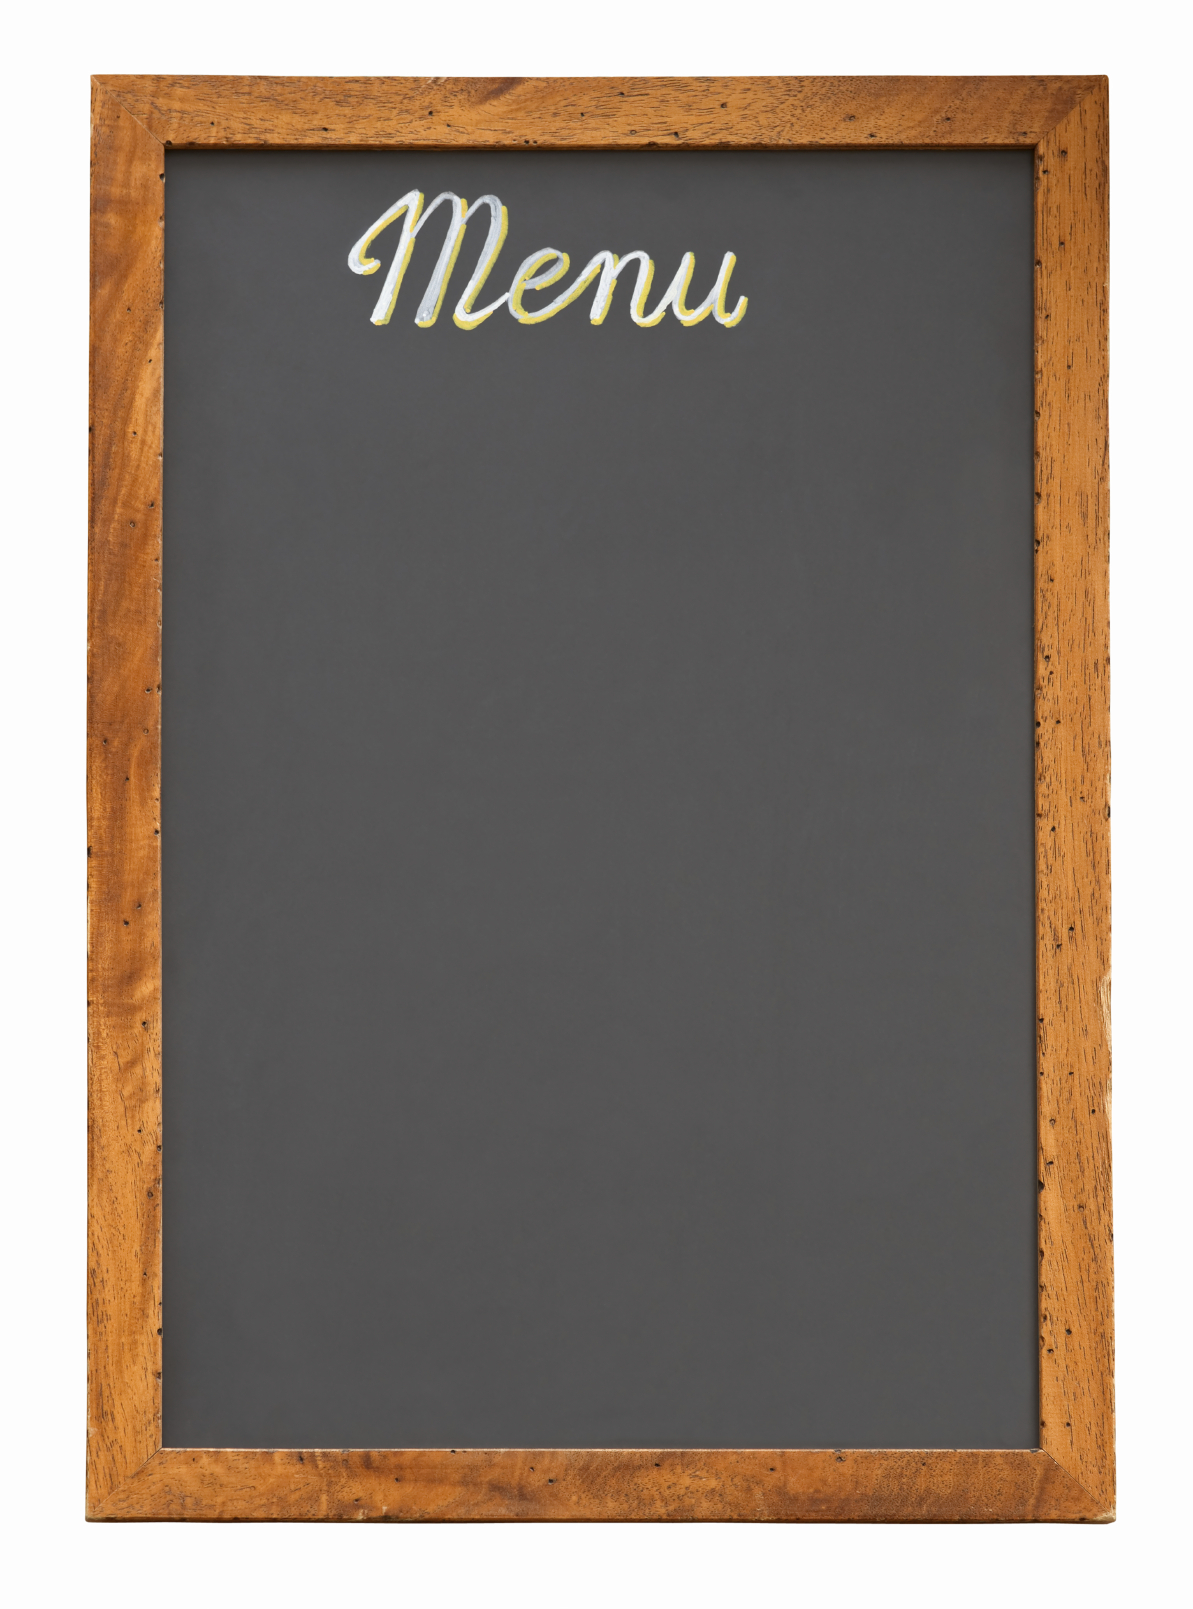 Blank Chalkboard Menu | www.imgkid.com - The Image Kid Has It!